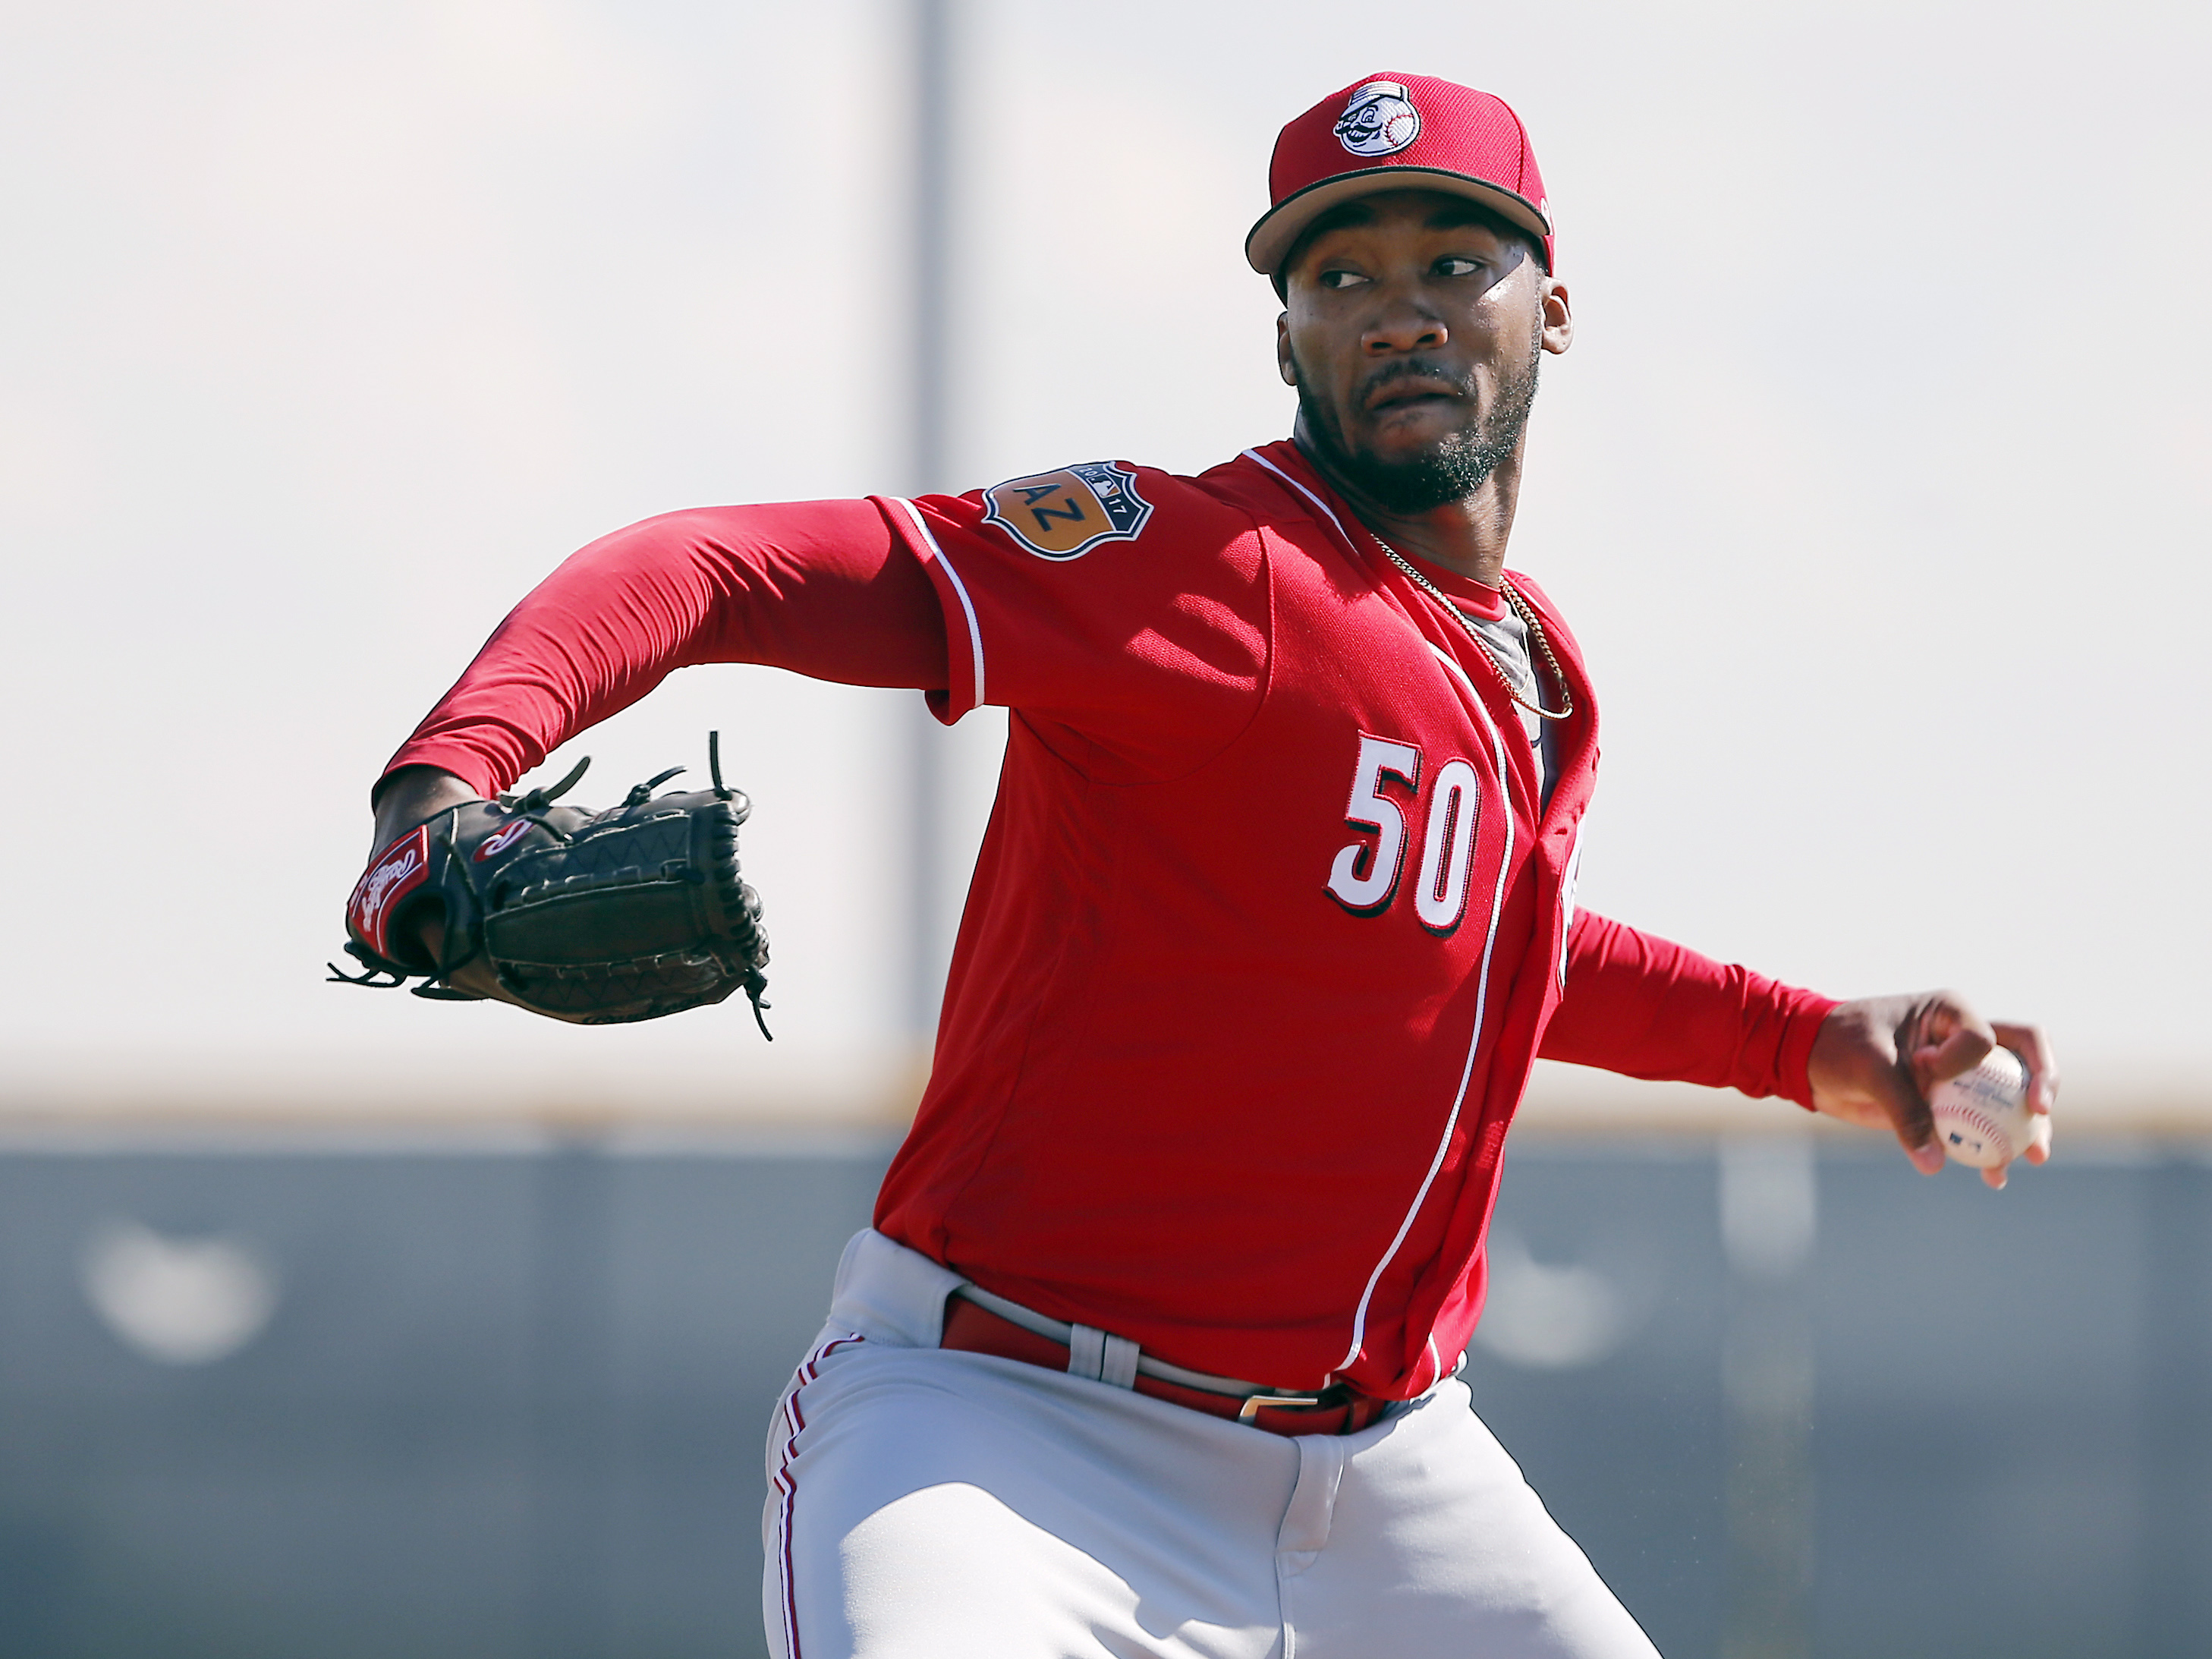 9890150-sports-cincinnati-reds-workouts